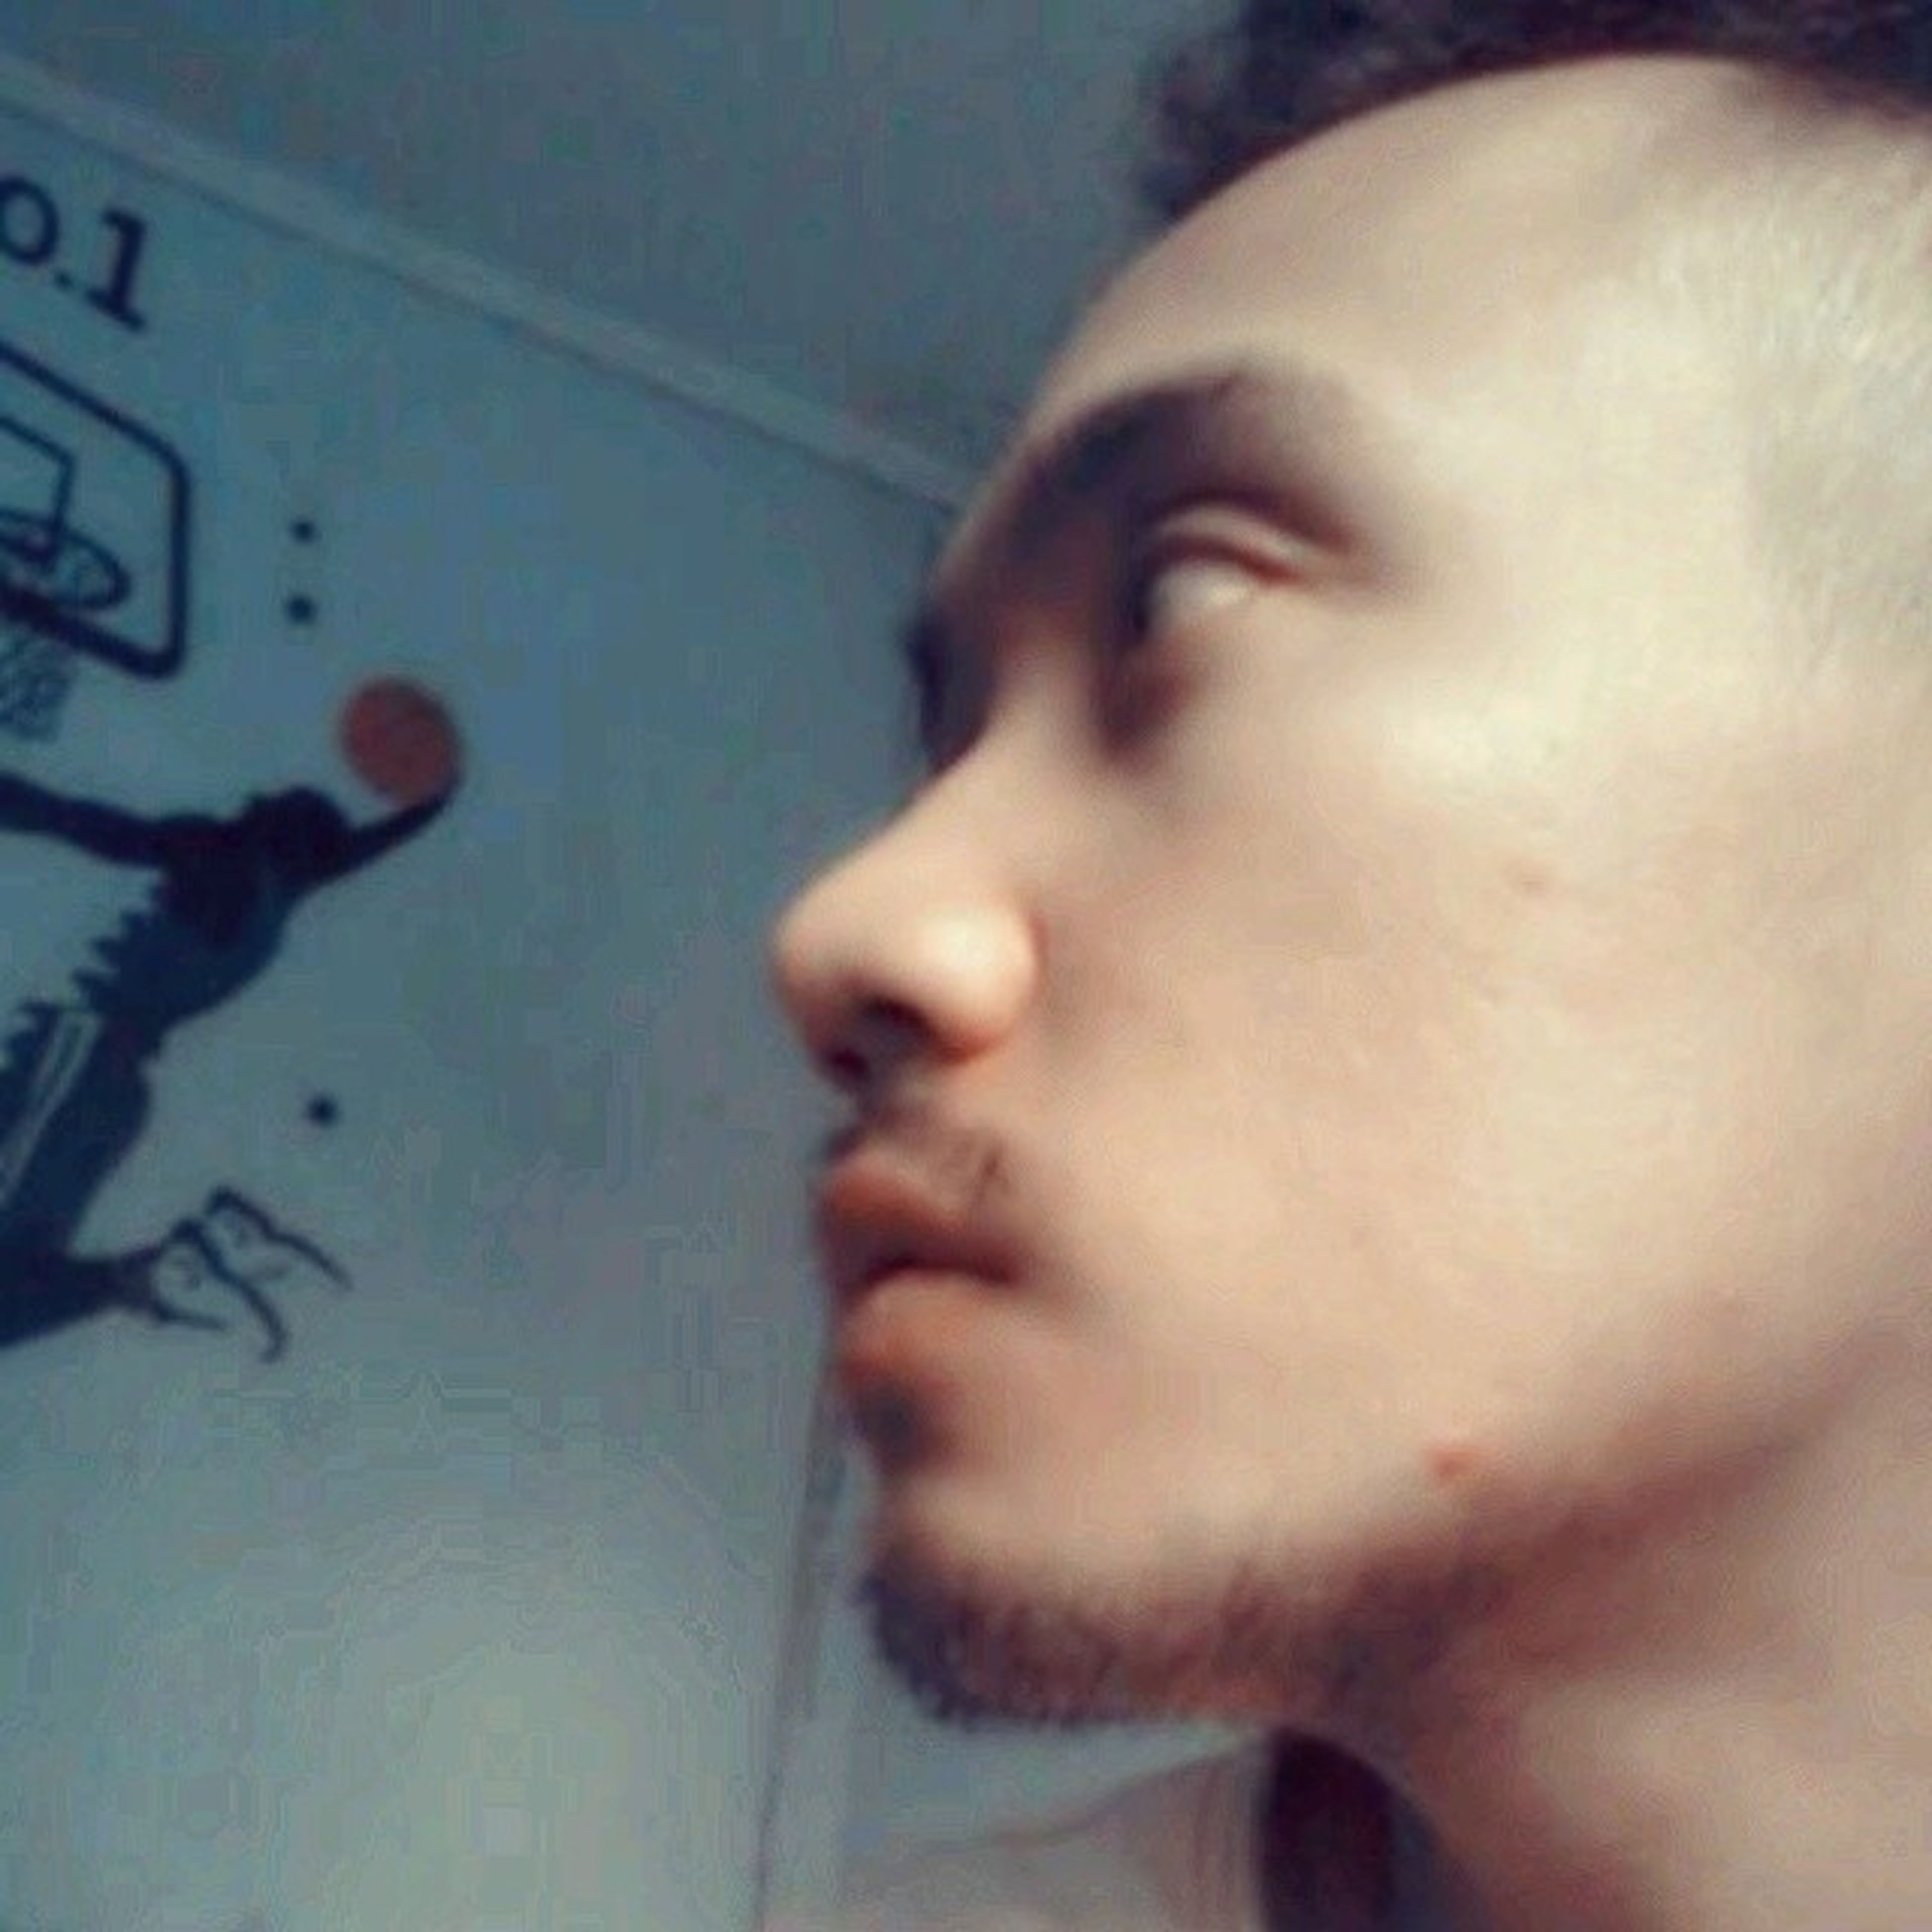 indoors, headshot, lifestyles, close-up, person, leisure activity, human face, young men, young adult, head and shoulders, contemplation, focus on foreground, part of, front view, home interior, looking away